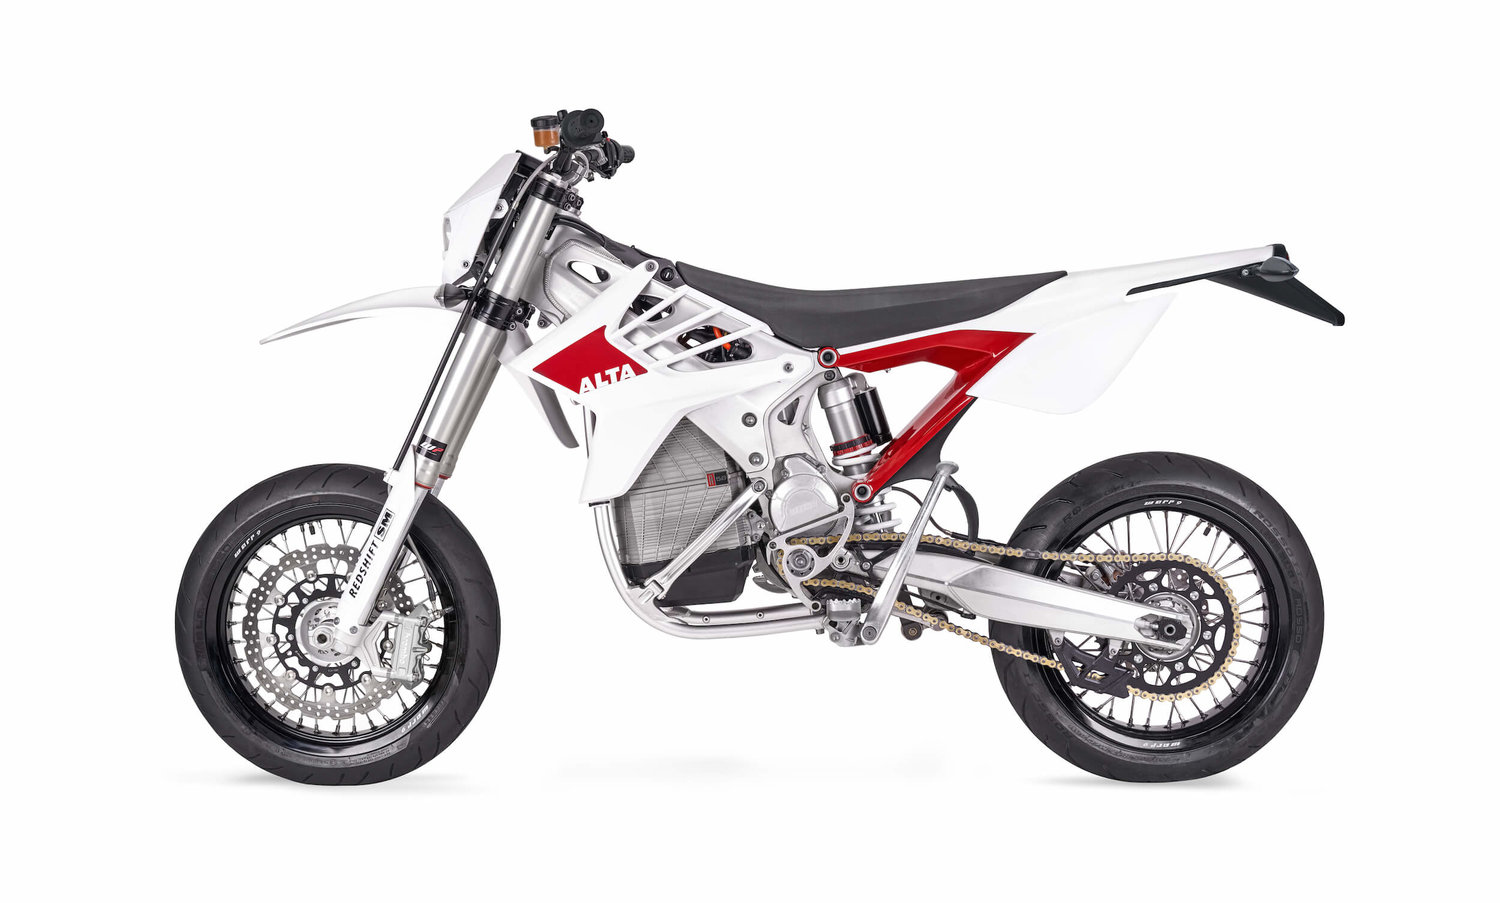 Alta Motors And The Rise Of Electric Vs Gas Powered Motorcycles